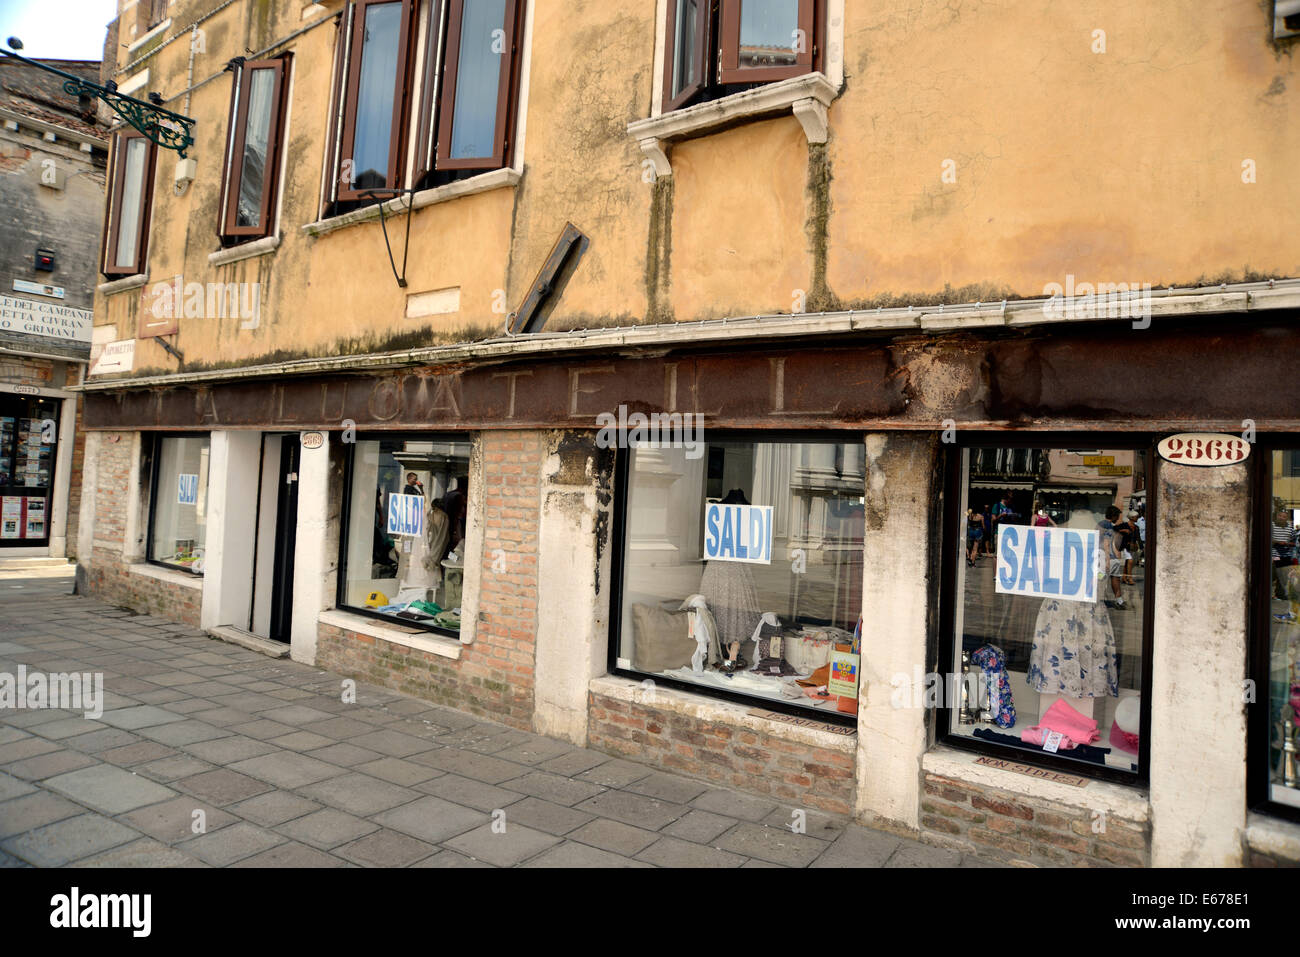 Italy Venice San Polo faded shop front 'La Lucatelll' - Stock Image